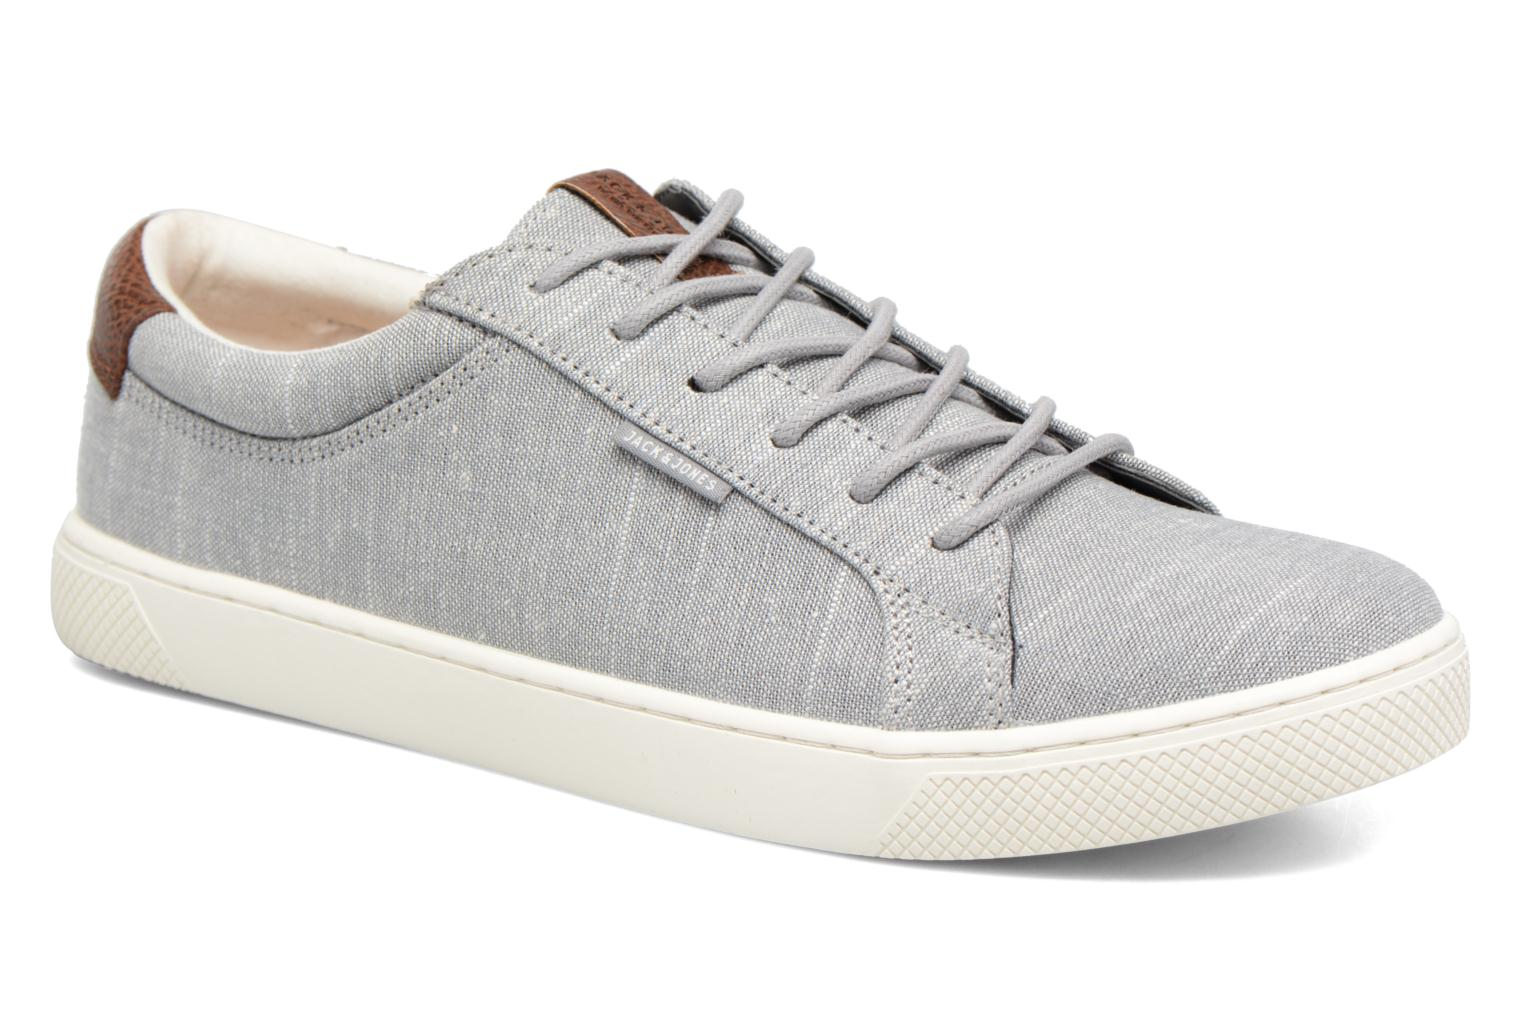 JFW Sable Frost grey